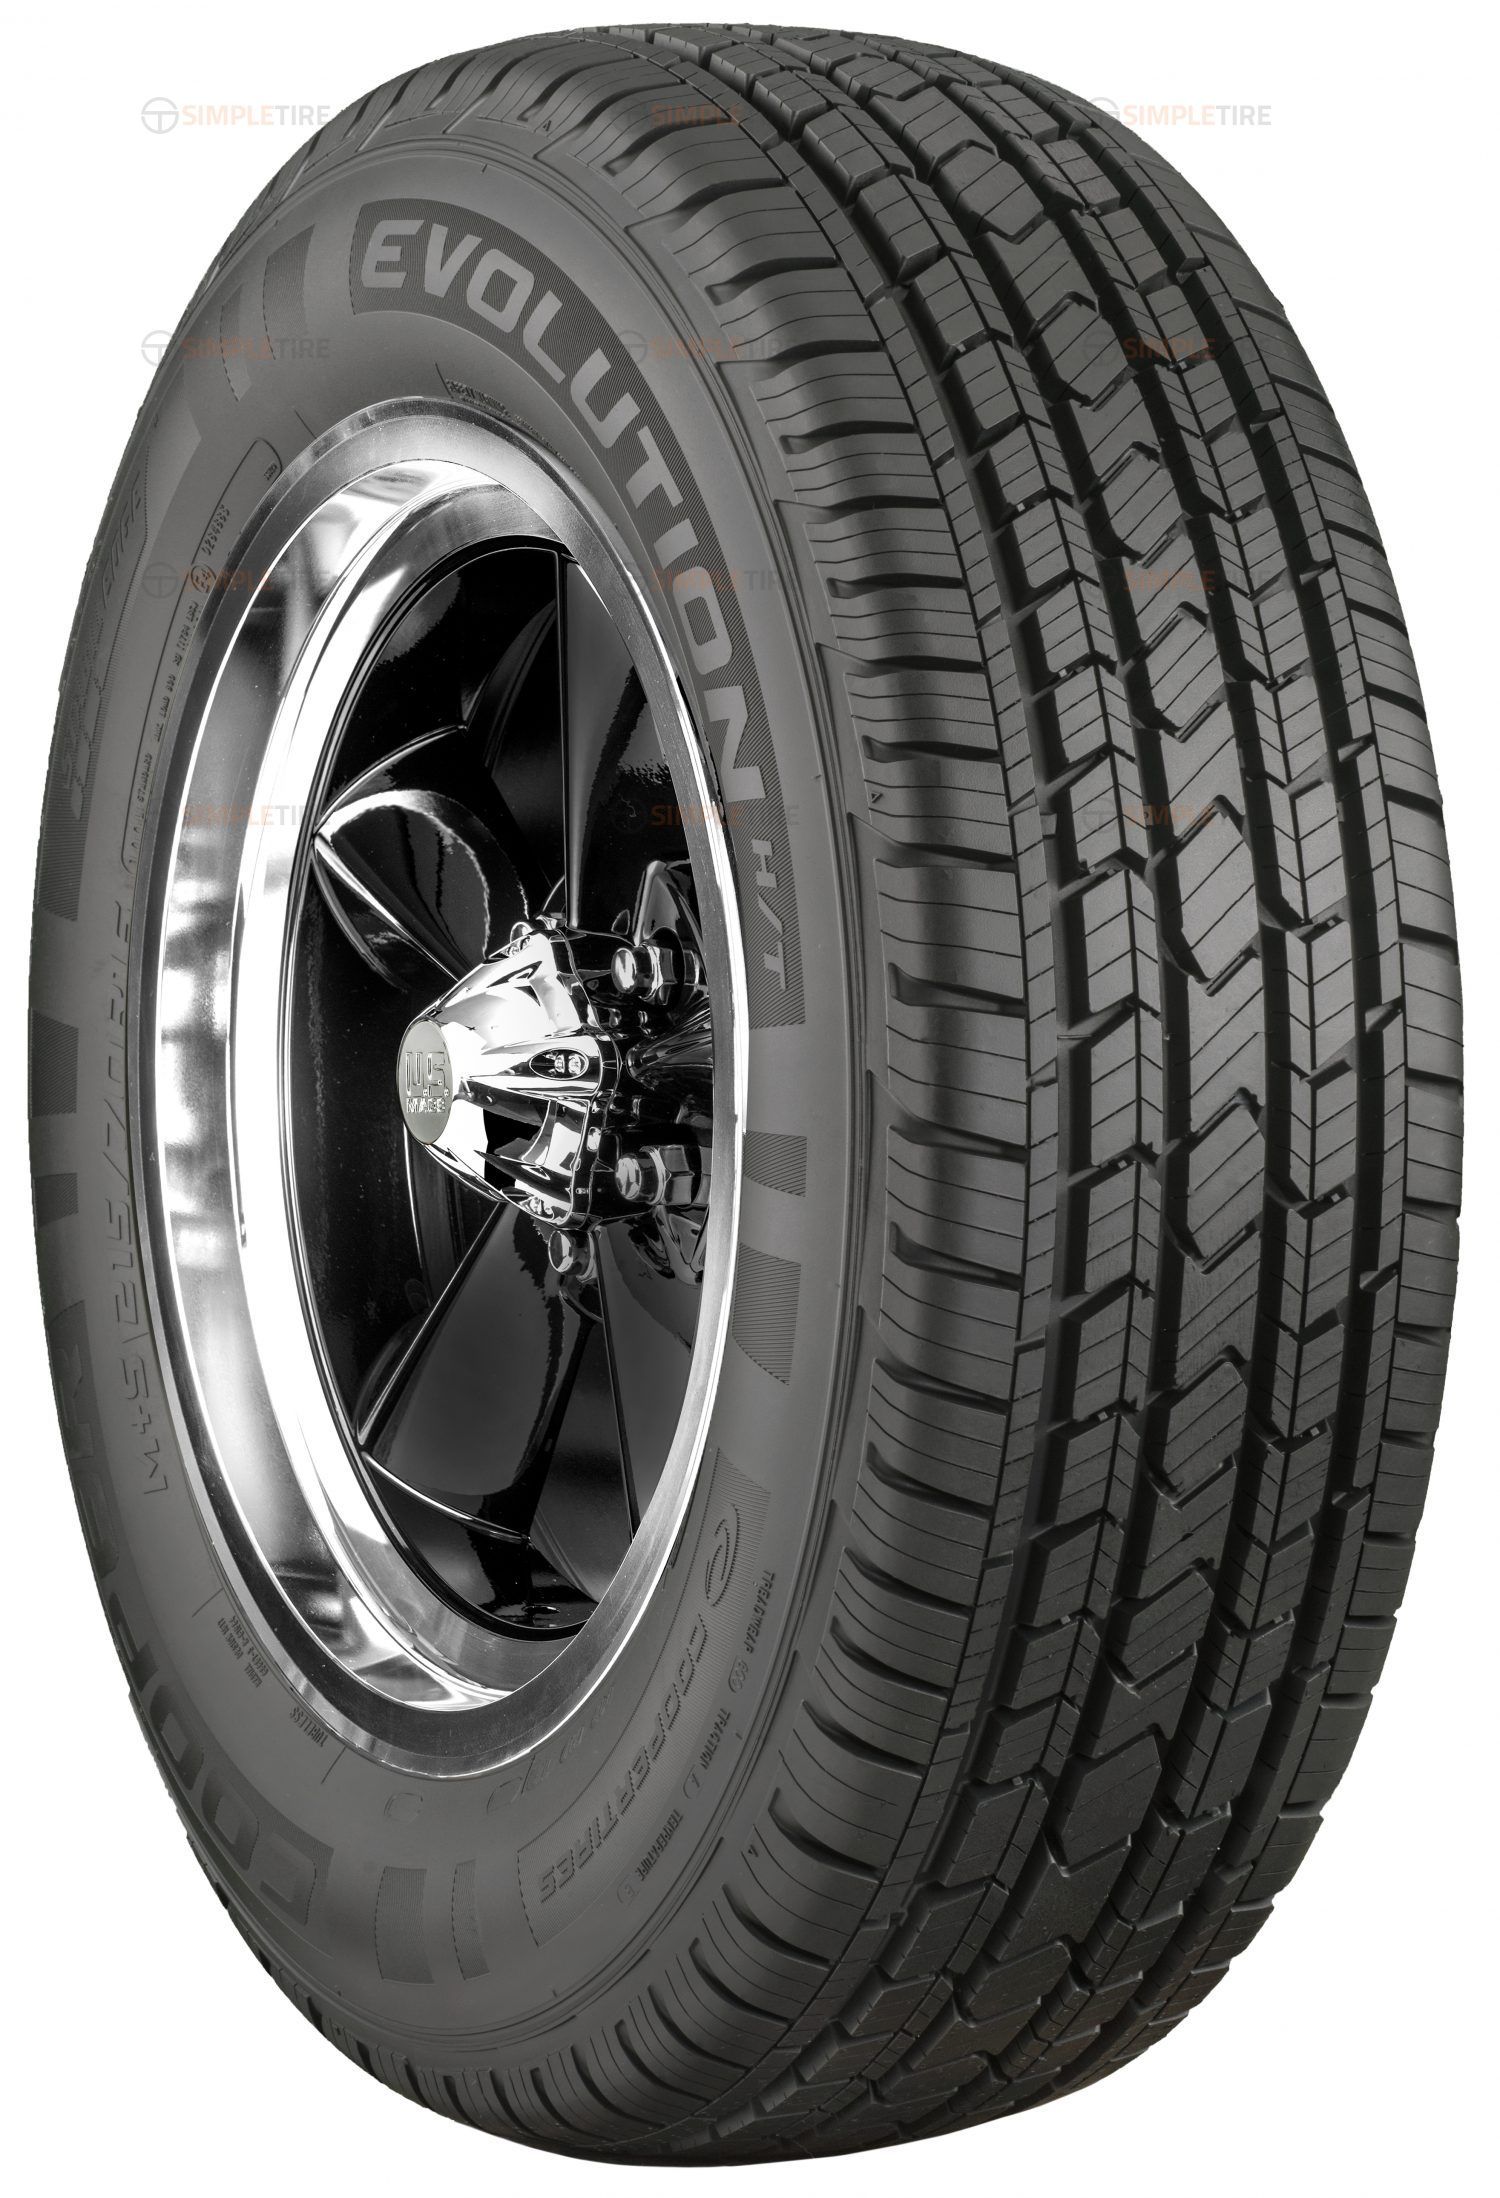 90000029105 255/70R16 Evolution HT Cooper